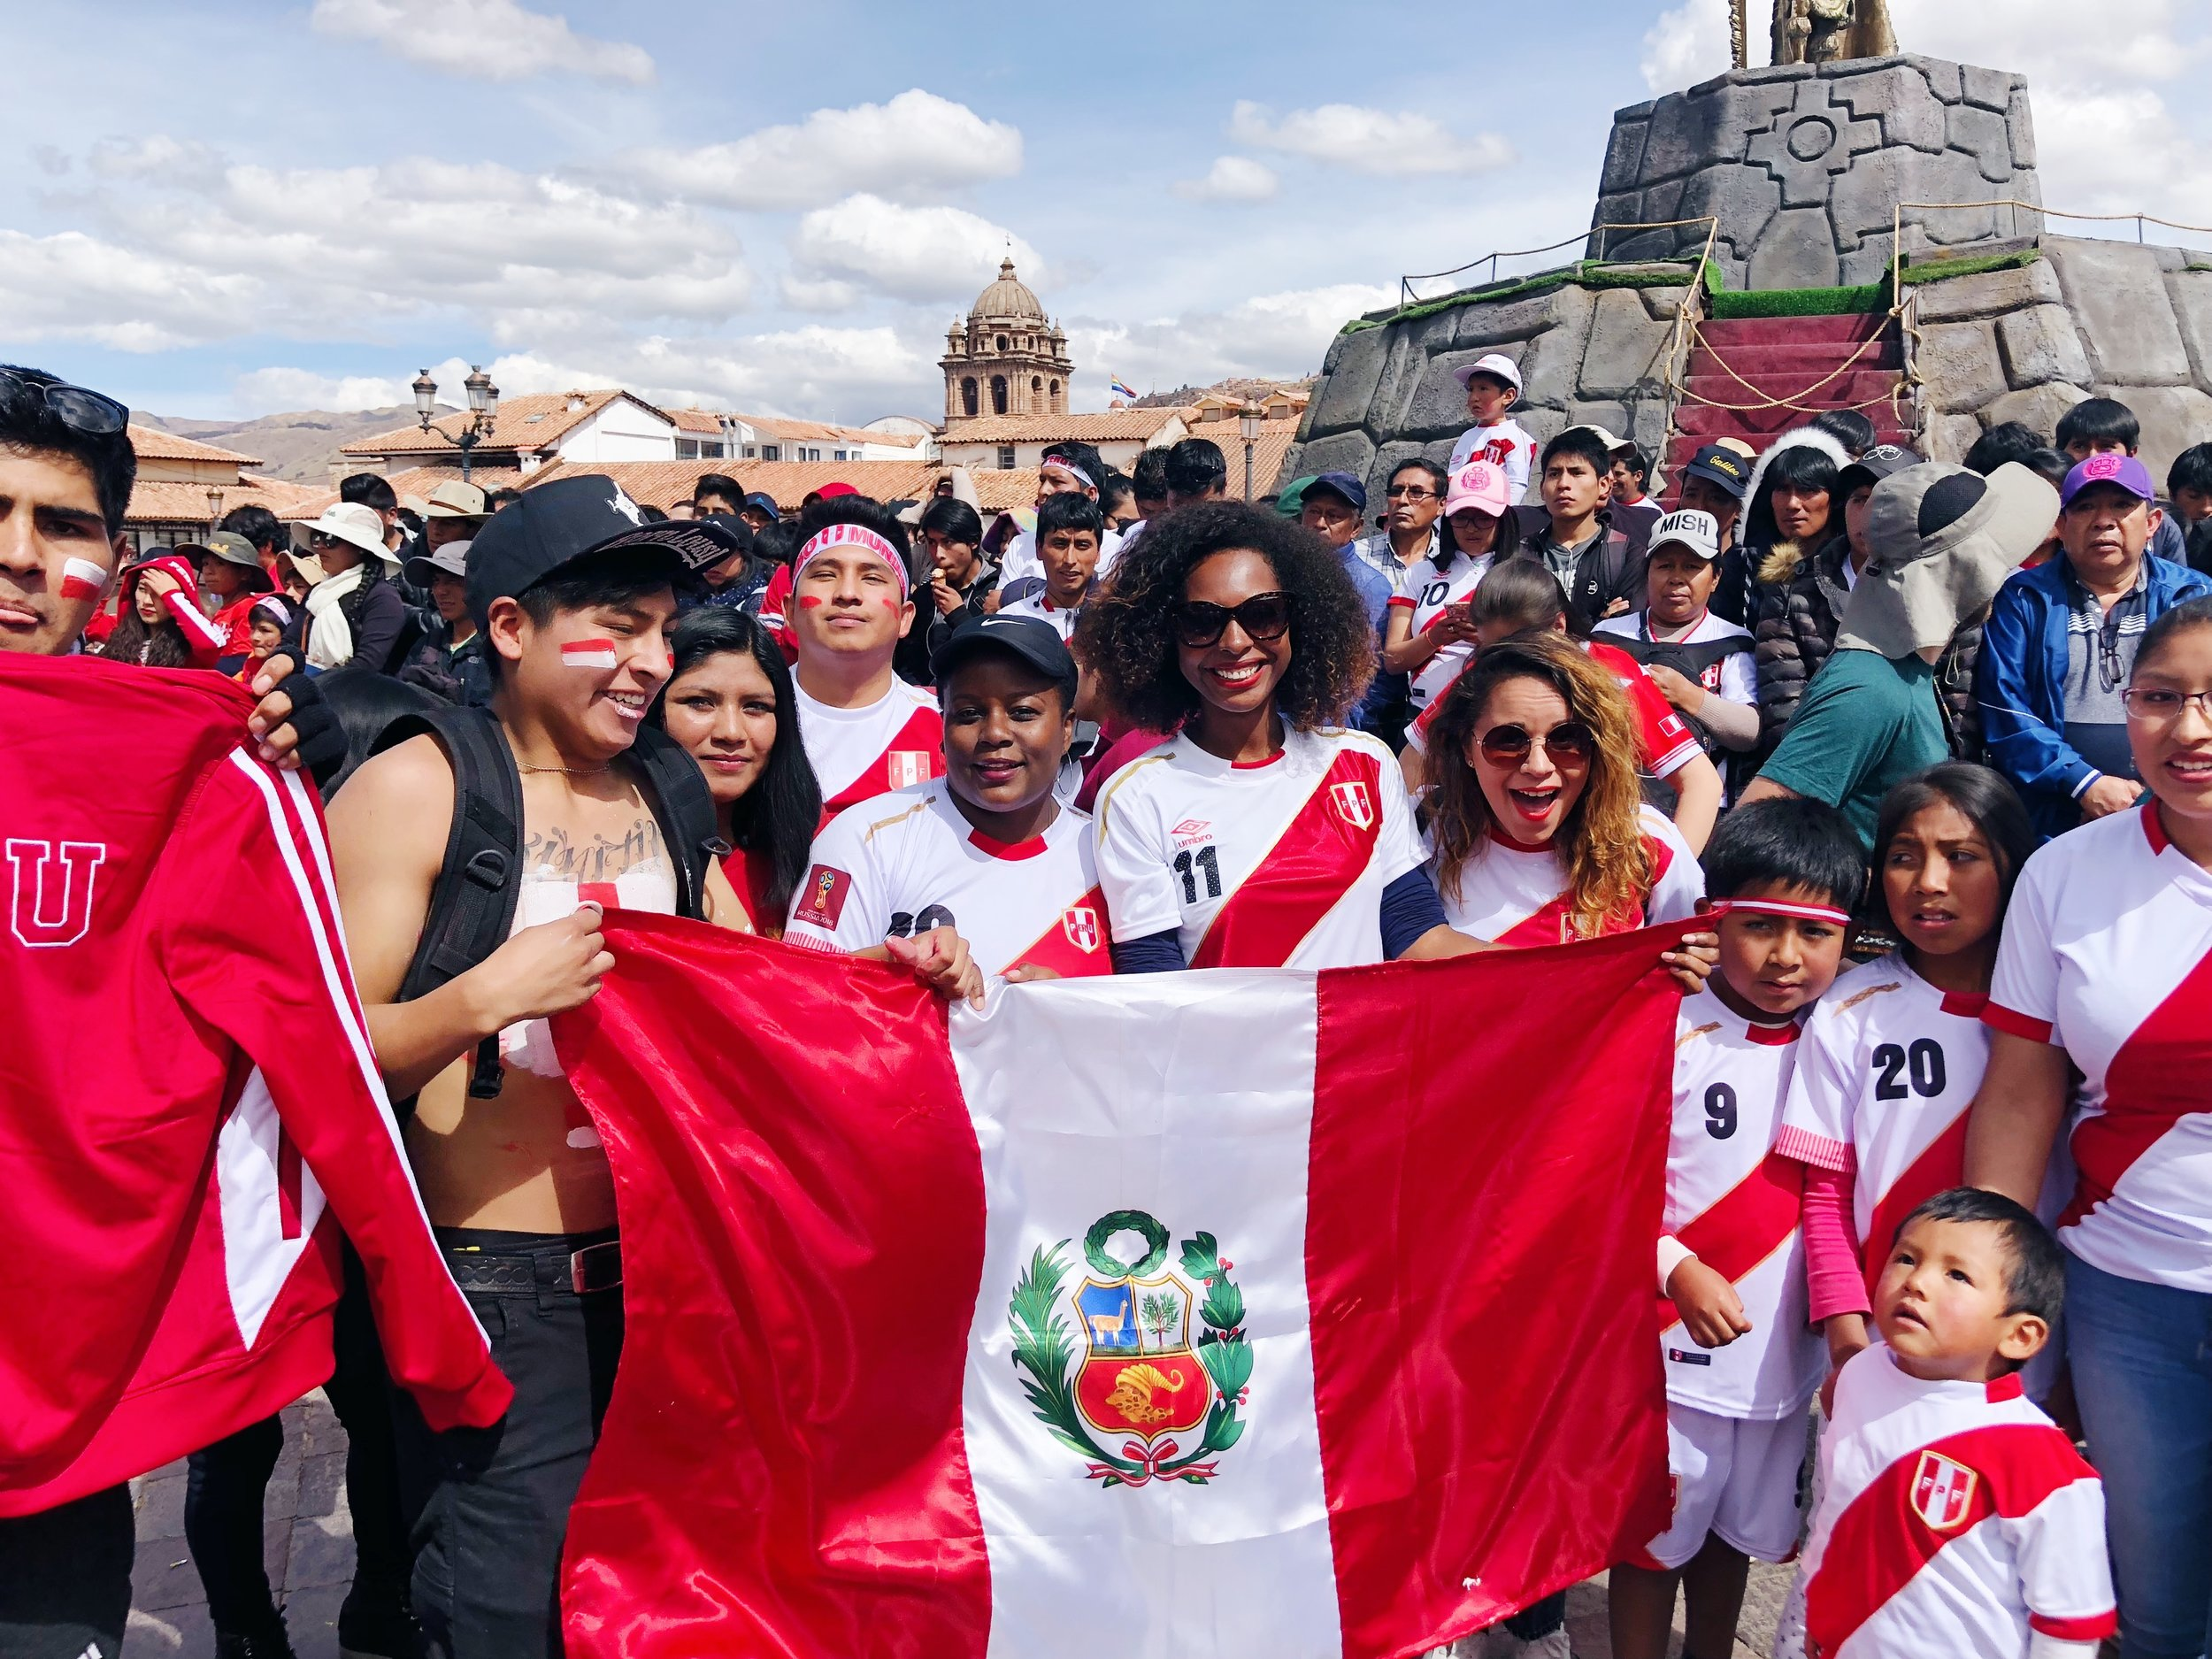 12 Top Travel Moments of 2018- Watching the Peru vs Denmark World Cup game